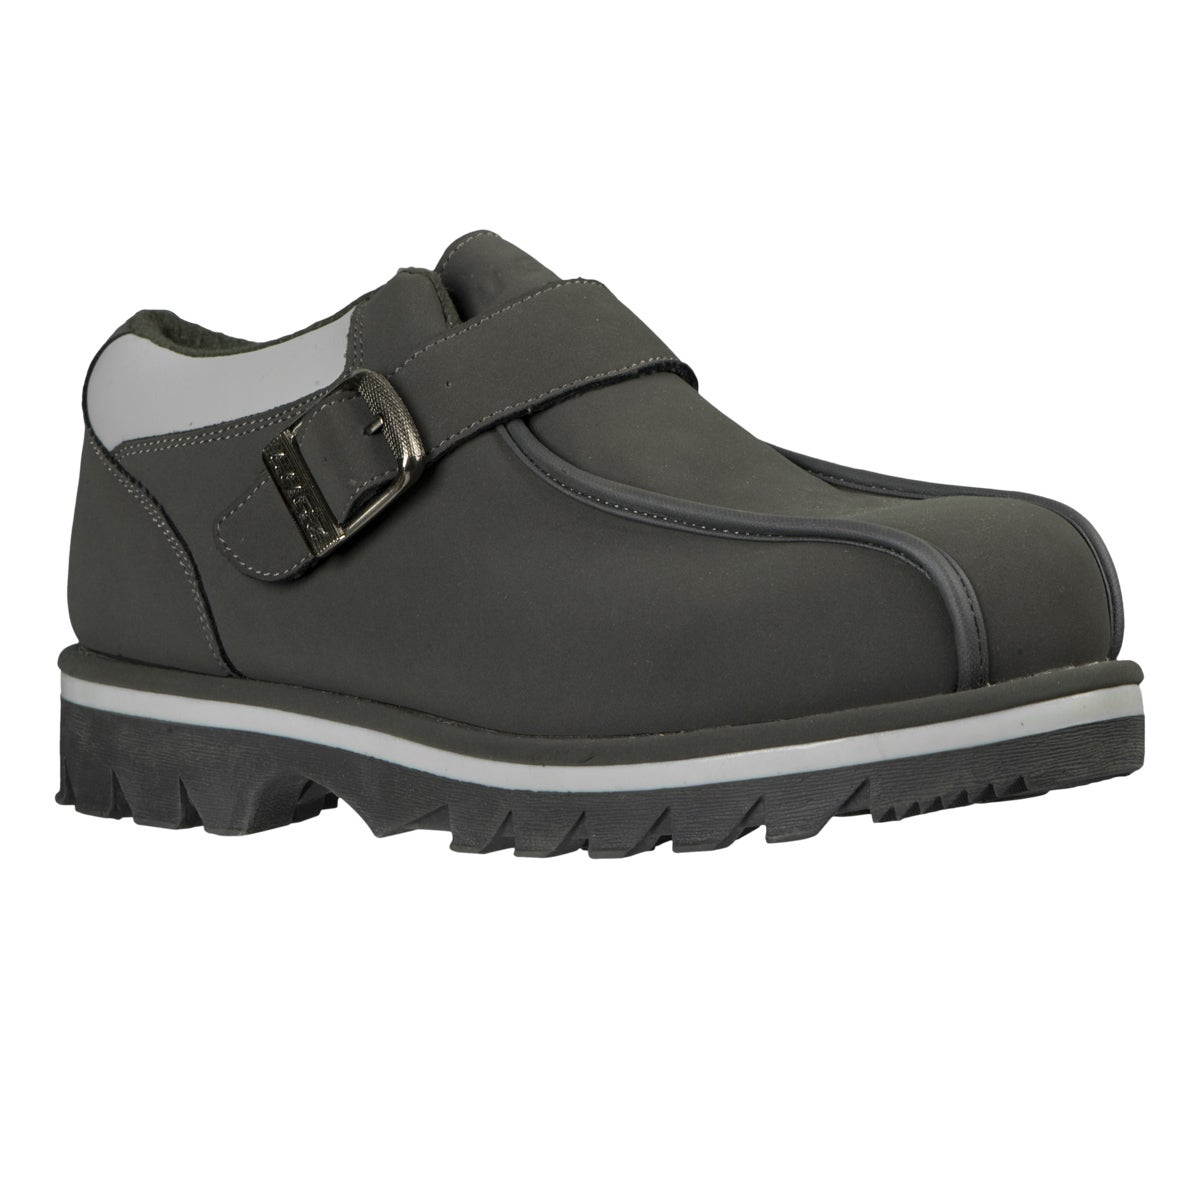 Lugz Men's Pathway Strap Grey Boots